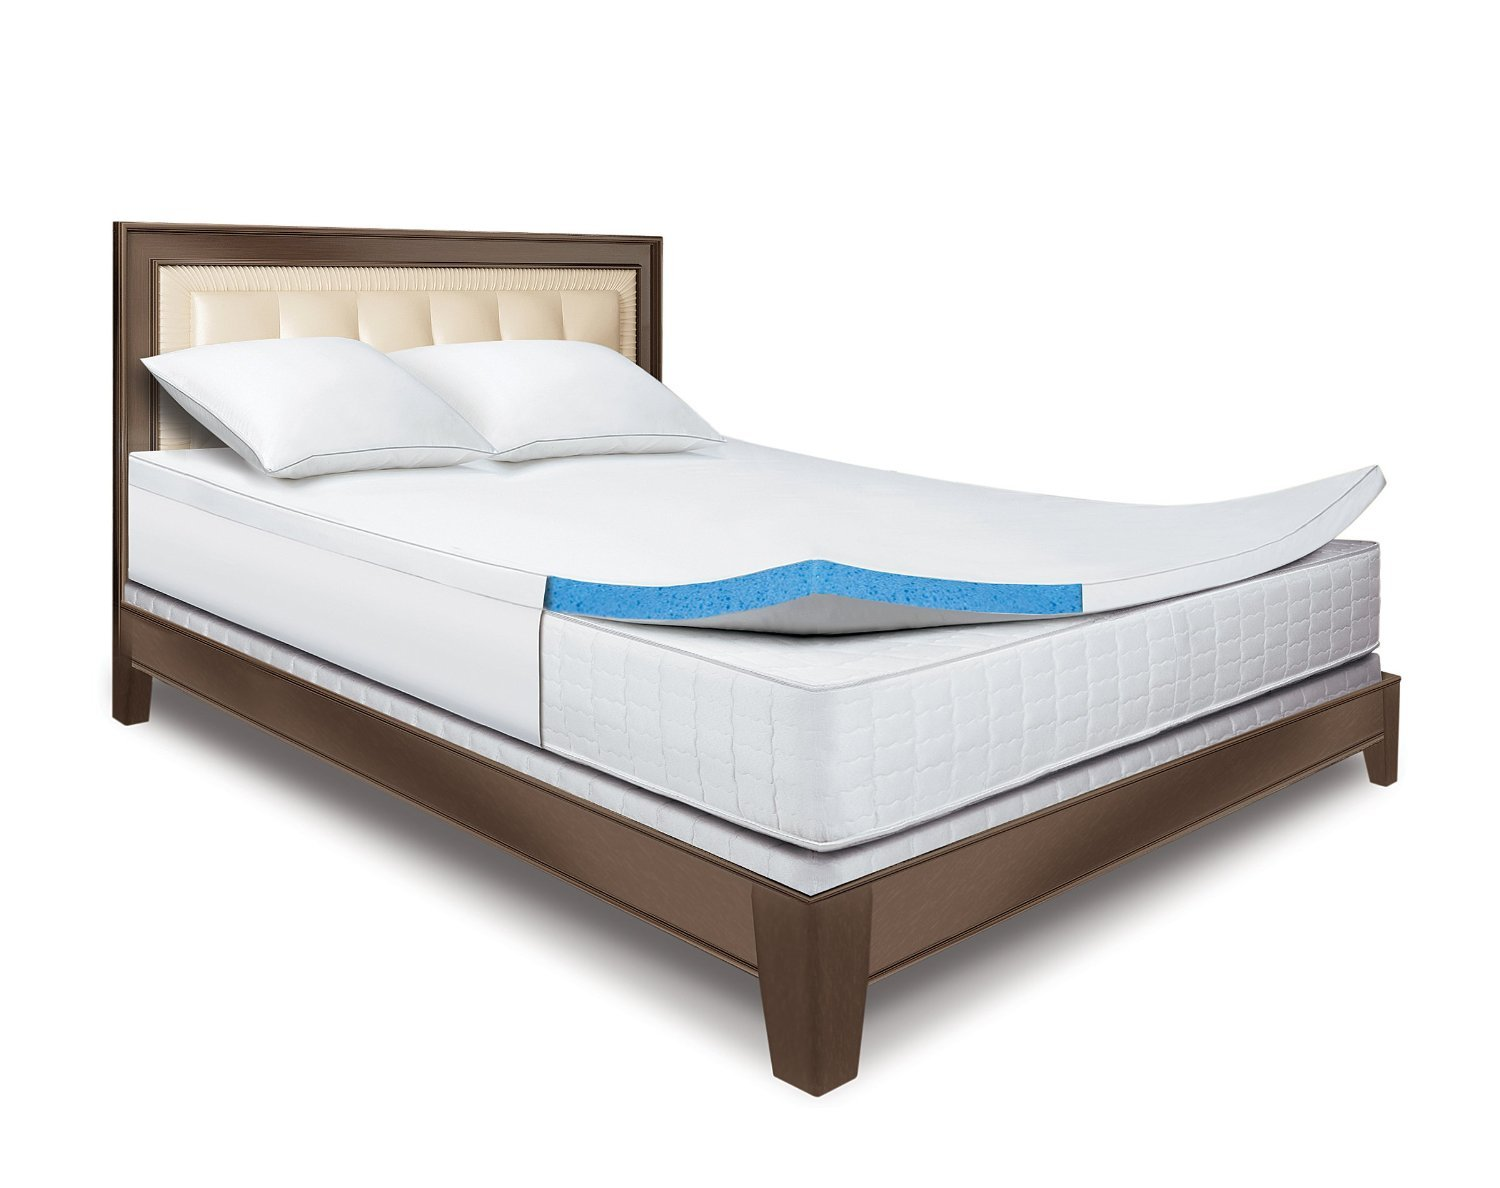 Sleep Innovations 2-Inch Gel Memory Foam Topper With Fitted Cover.   10-year limited warranty.  Made in the USA. by Sleep Innovations